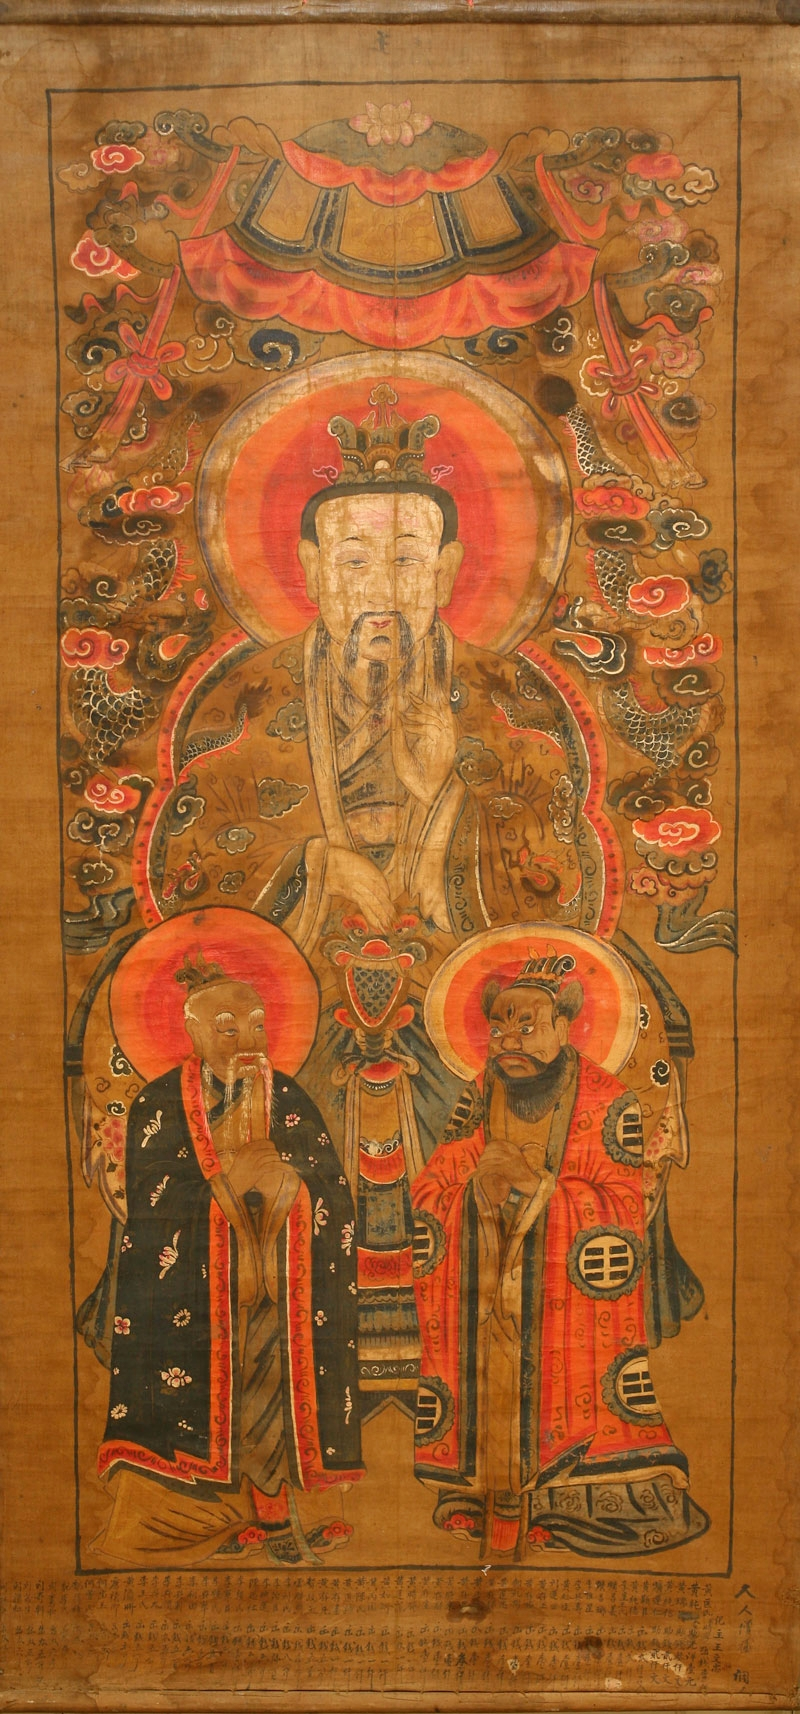 Rare Taoist painting on cloth, China, early 19th century.